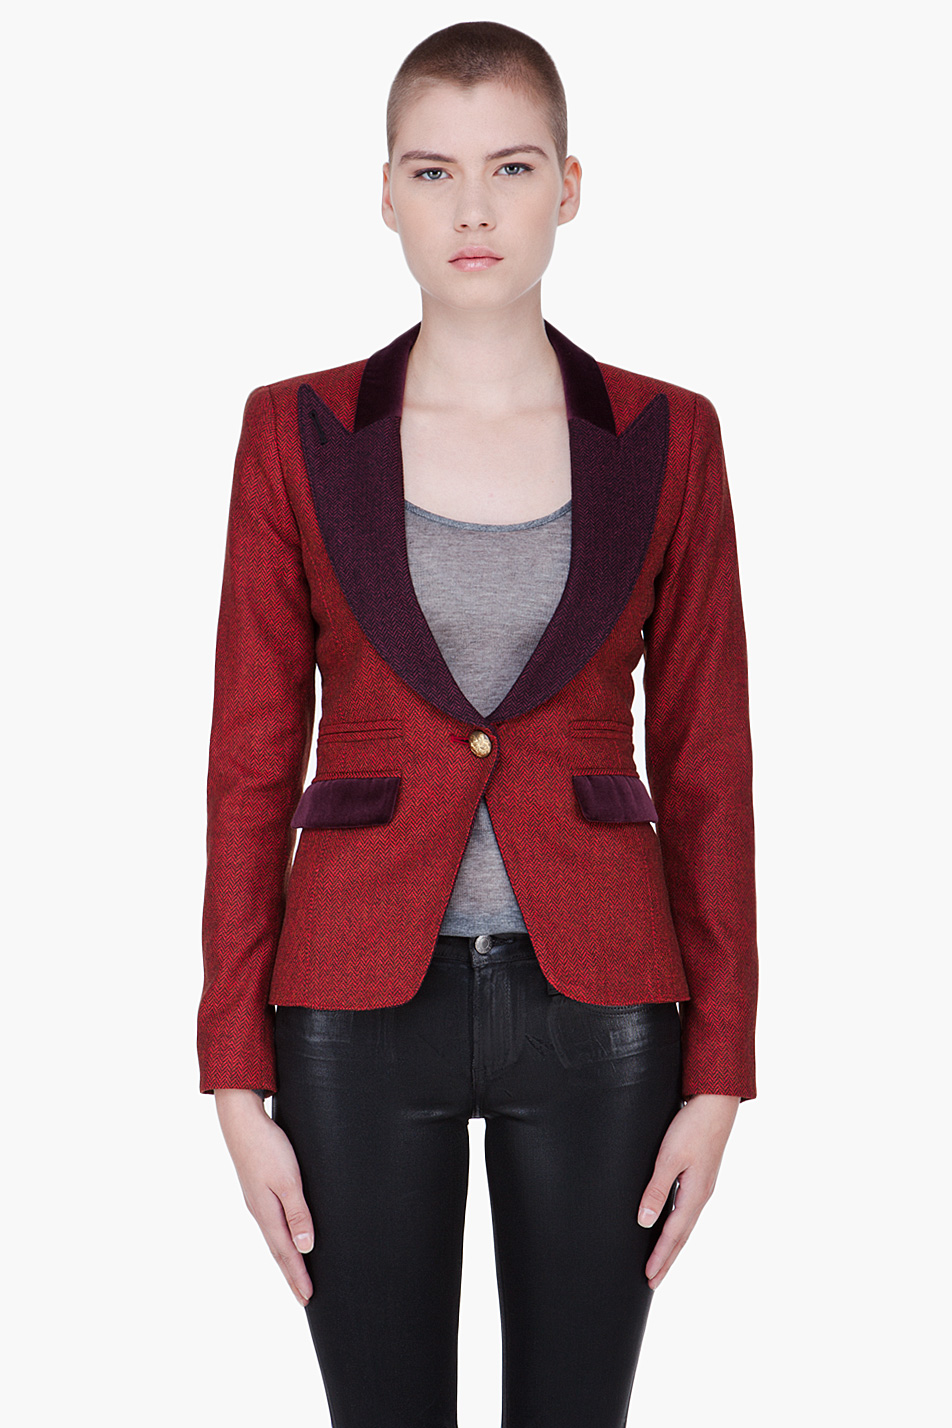 Smythe red peaked lapel blazer in red lyst for Smythe designer